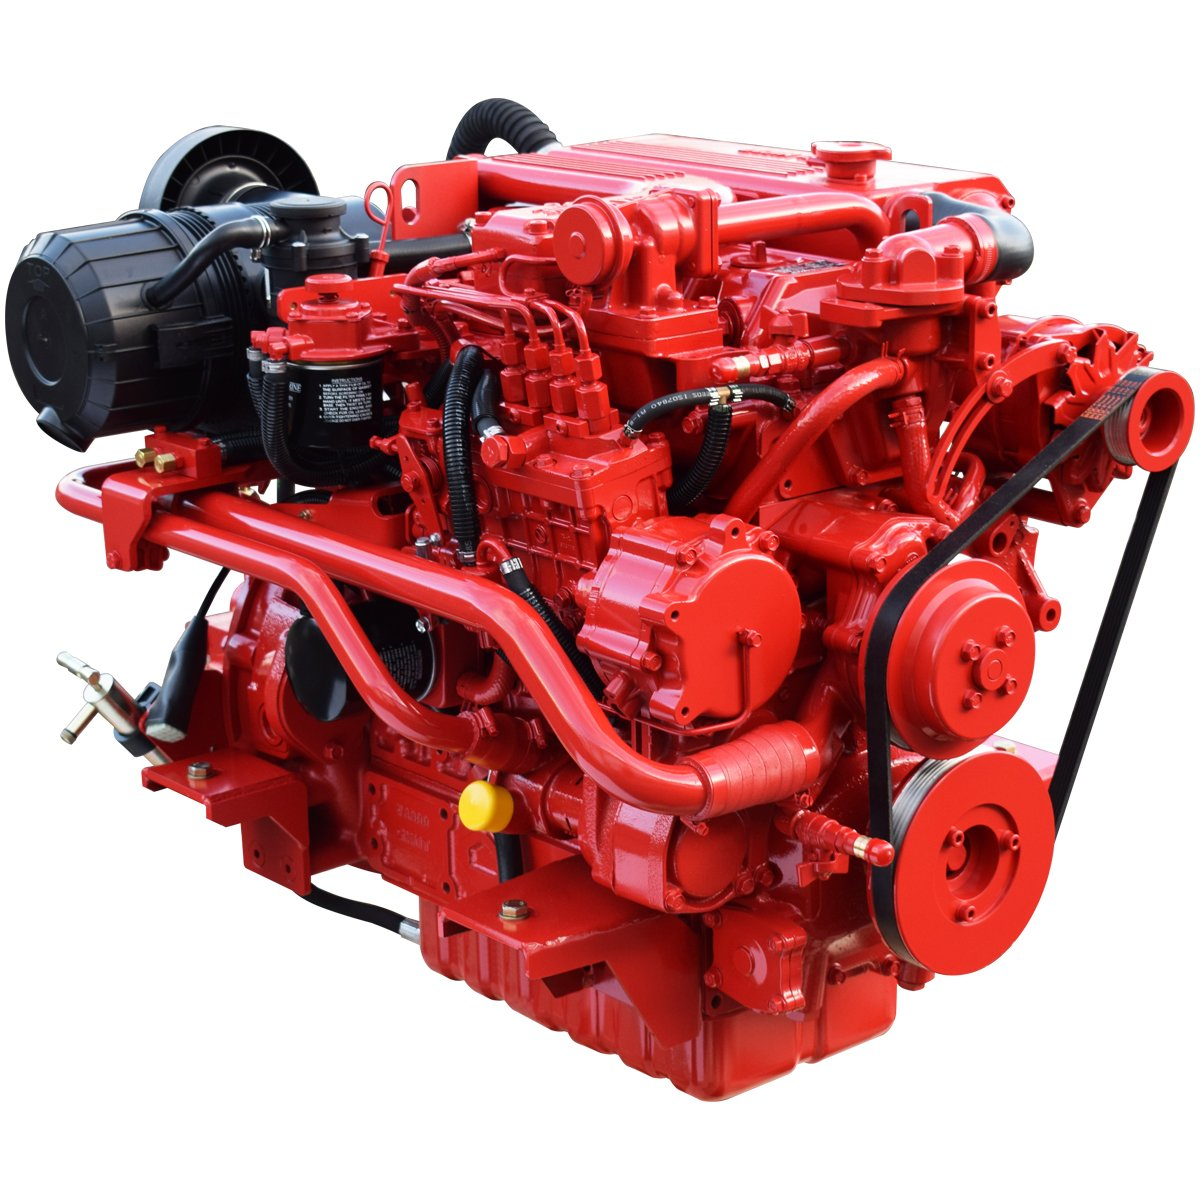 Beta Marine USA - marine diesel propulsion engines - Beta 105T heat exchanger engine